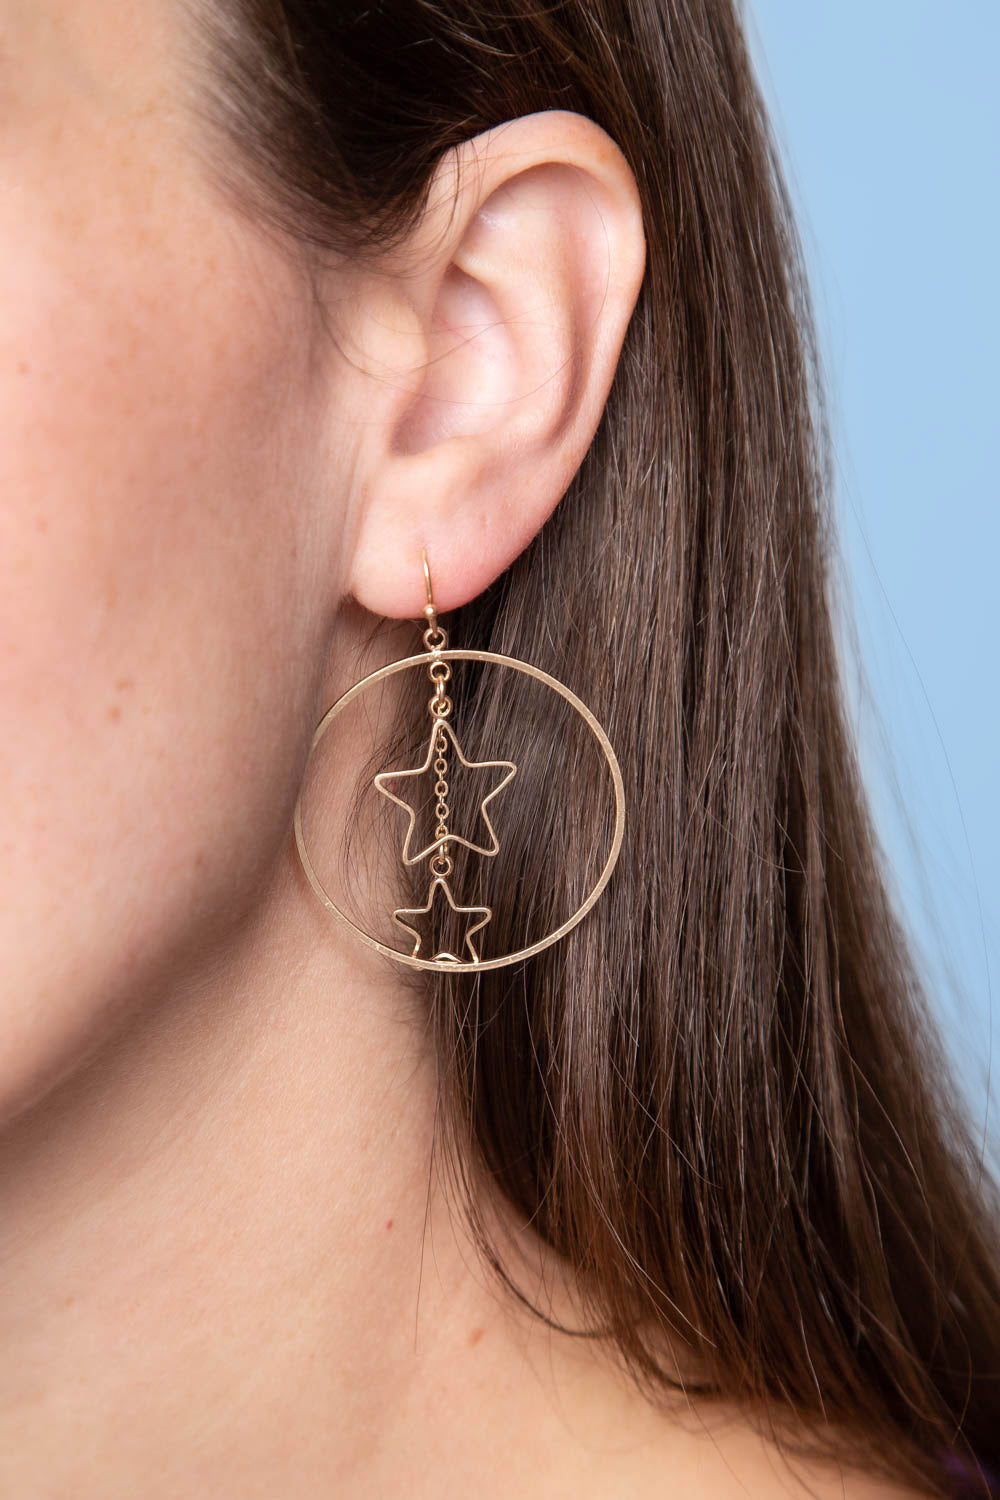 Type 1 Join the Hoopla Earrings